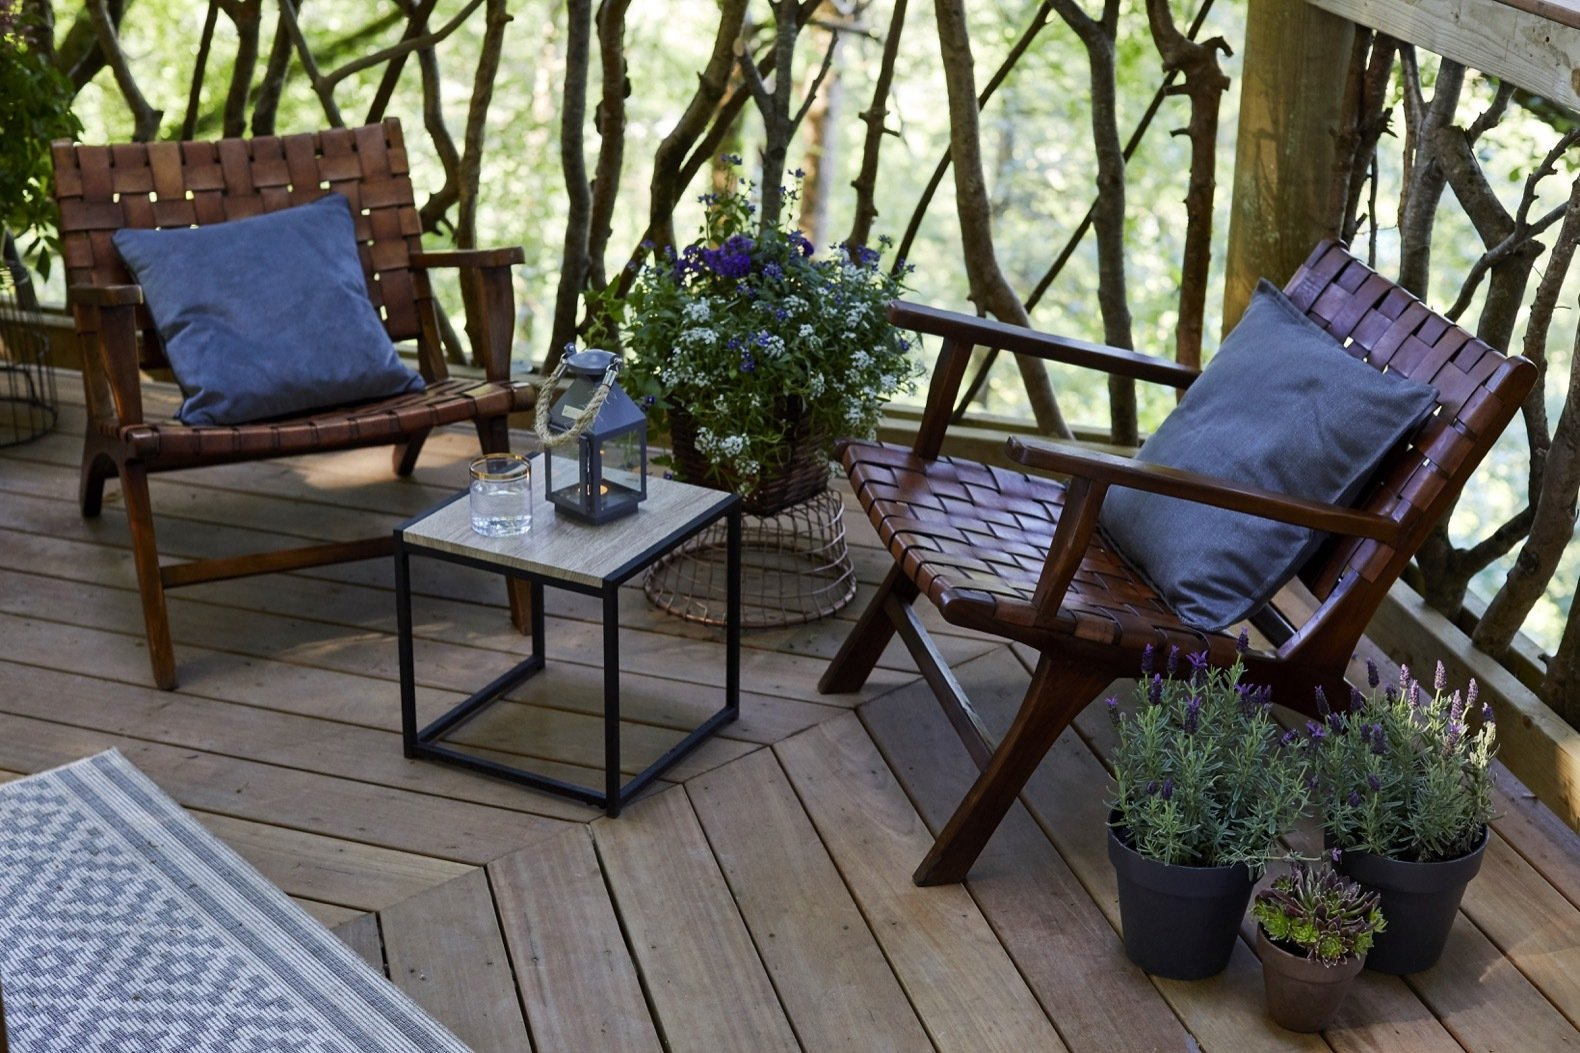 Outdoor, Trees, Woodland, Wood Fences, Wall, and Large Patio, Porch, Deck Surrey Garden Chairs offer the perfect place to lounge amidst the tree canopy.  Ravendere Retreats from A Luxe, Handcrafted Tree House Offers Blissful Escape Into Nature